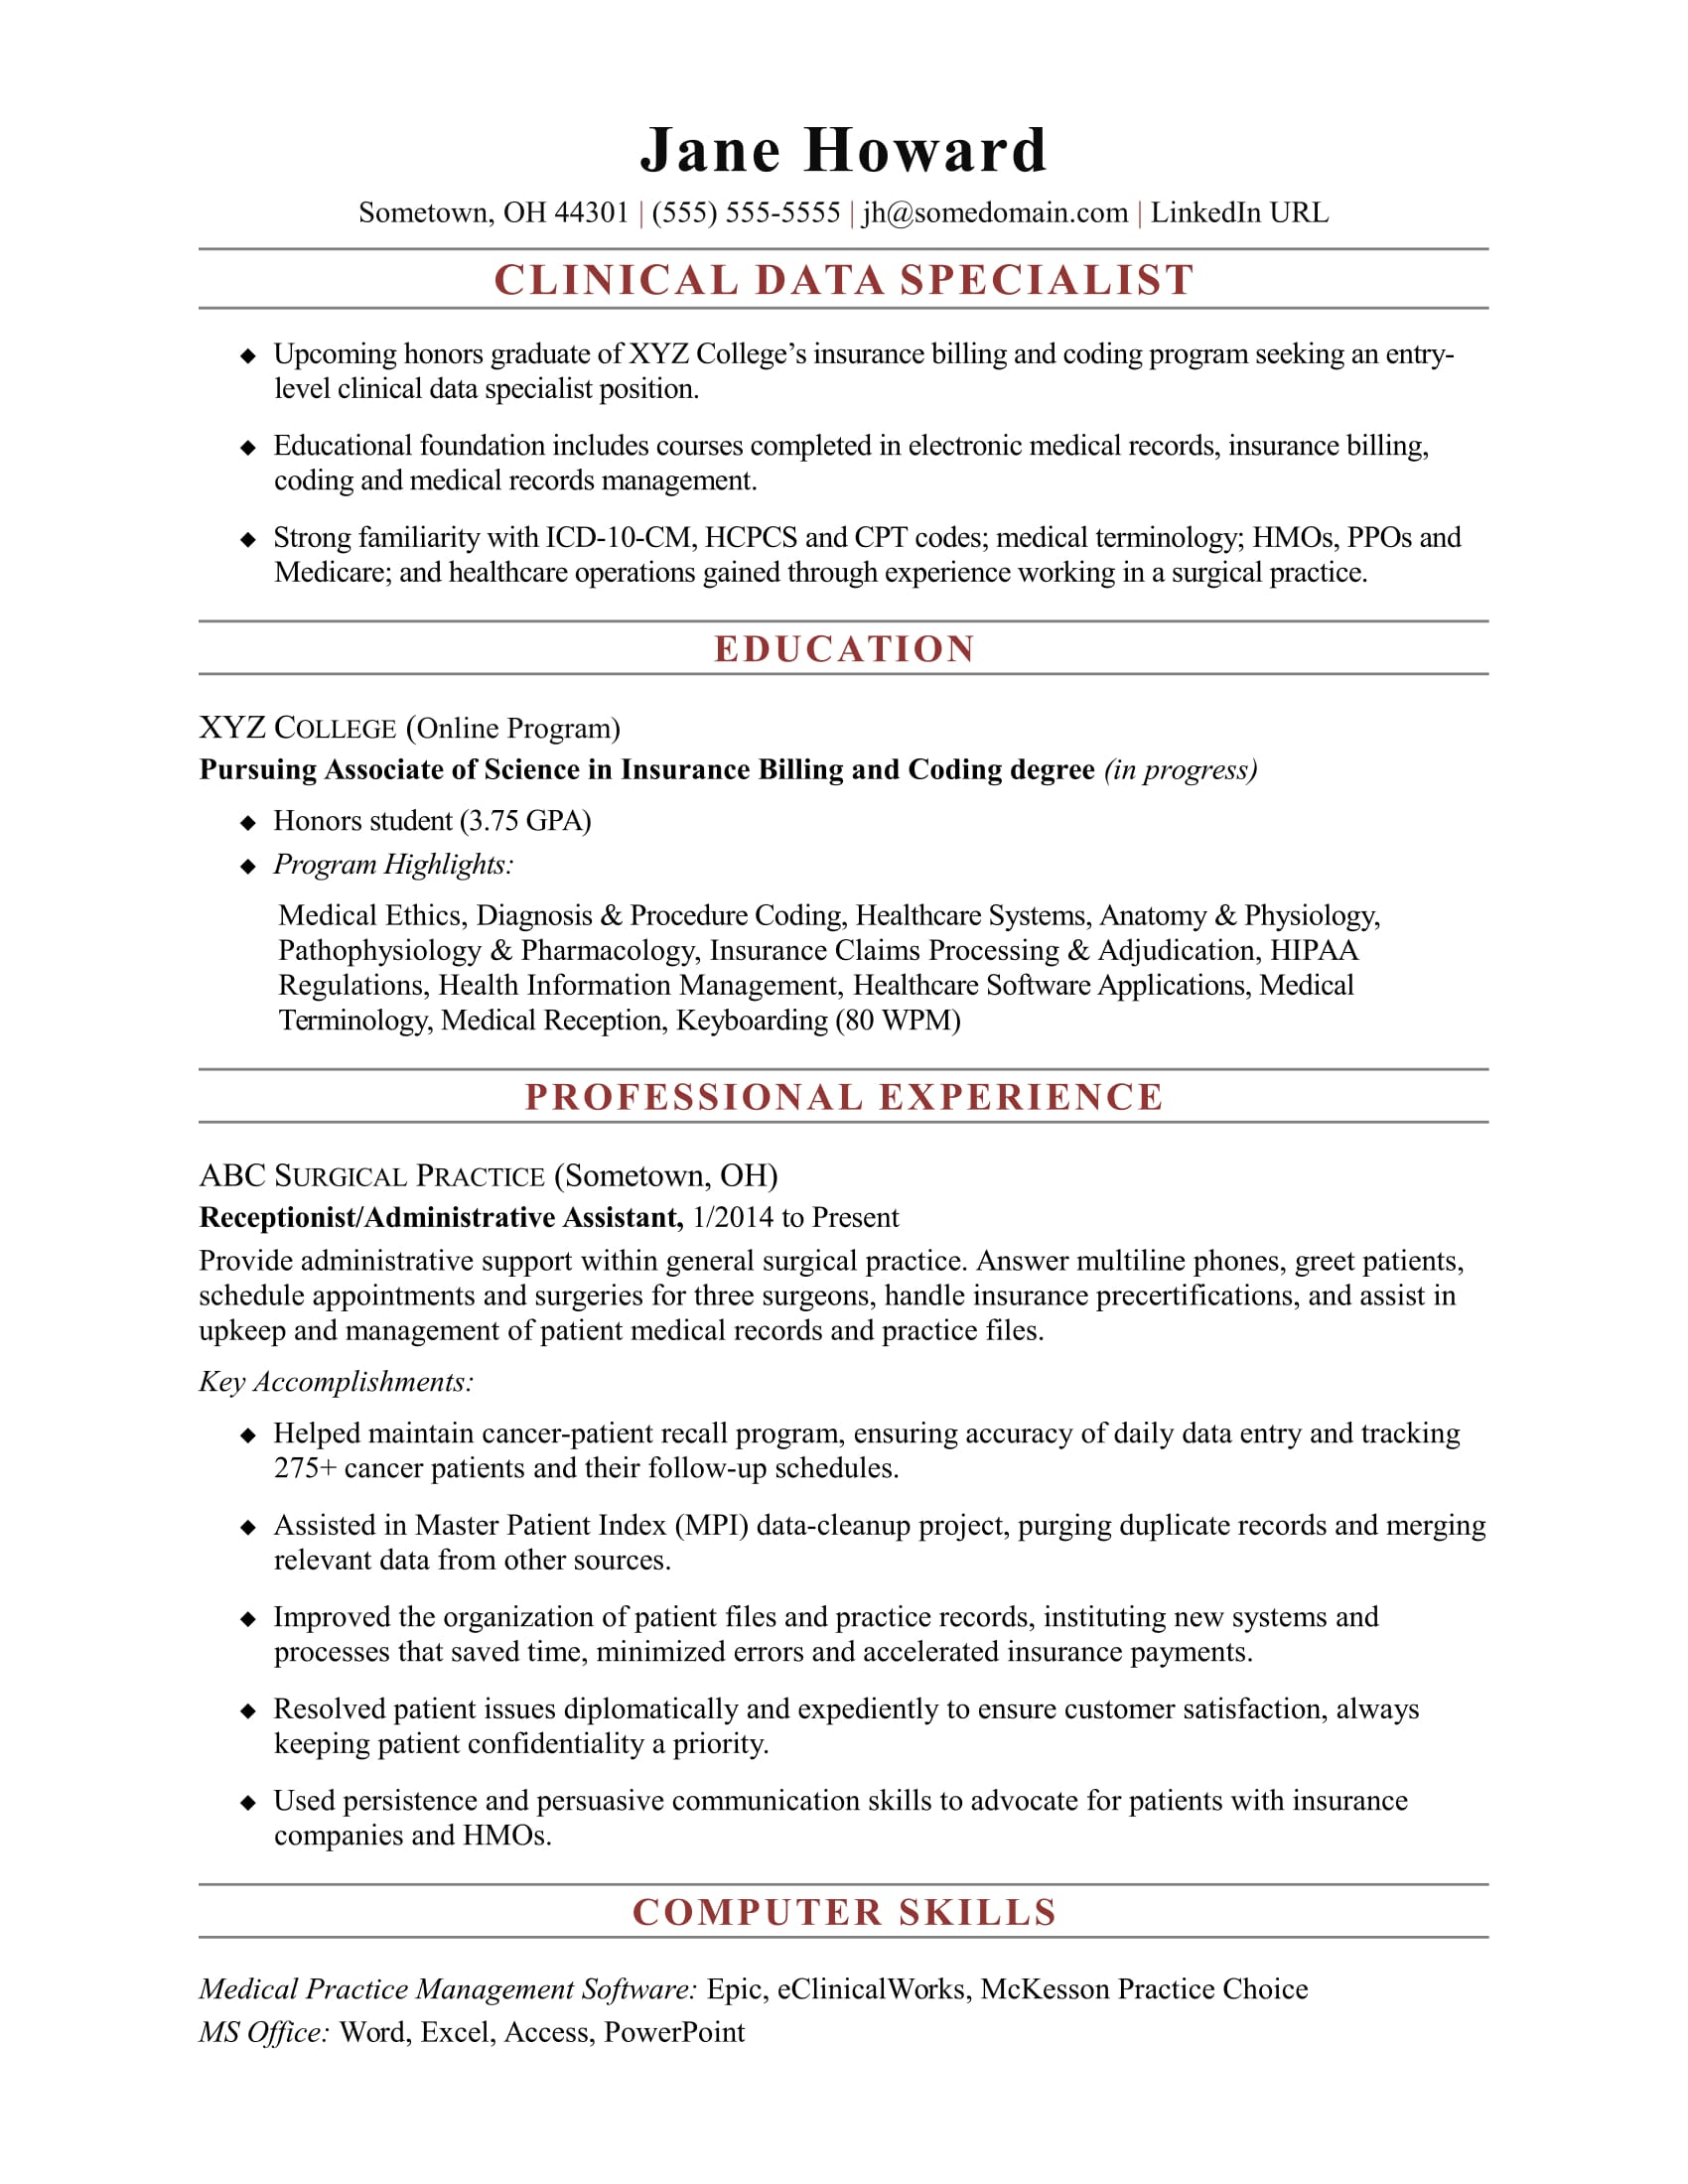 Sample Resume For An Entry Level Clinical Data Specialist